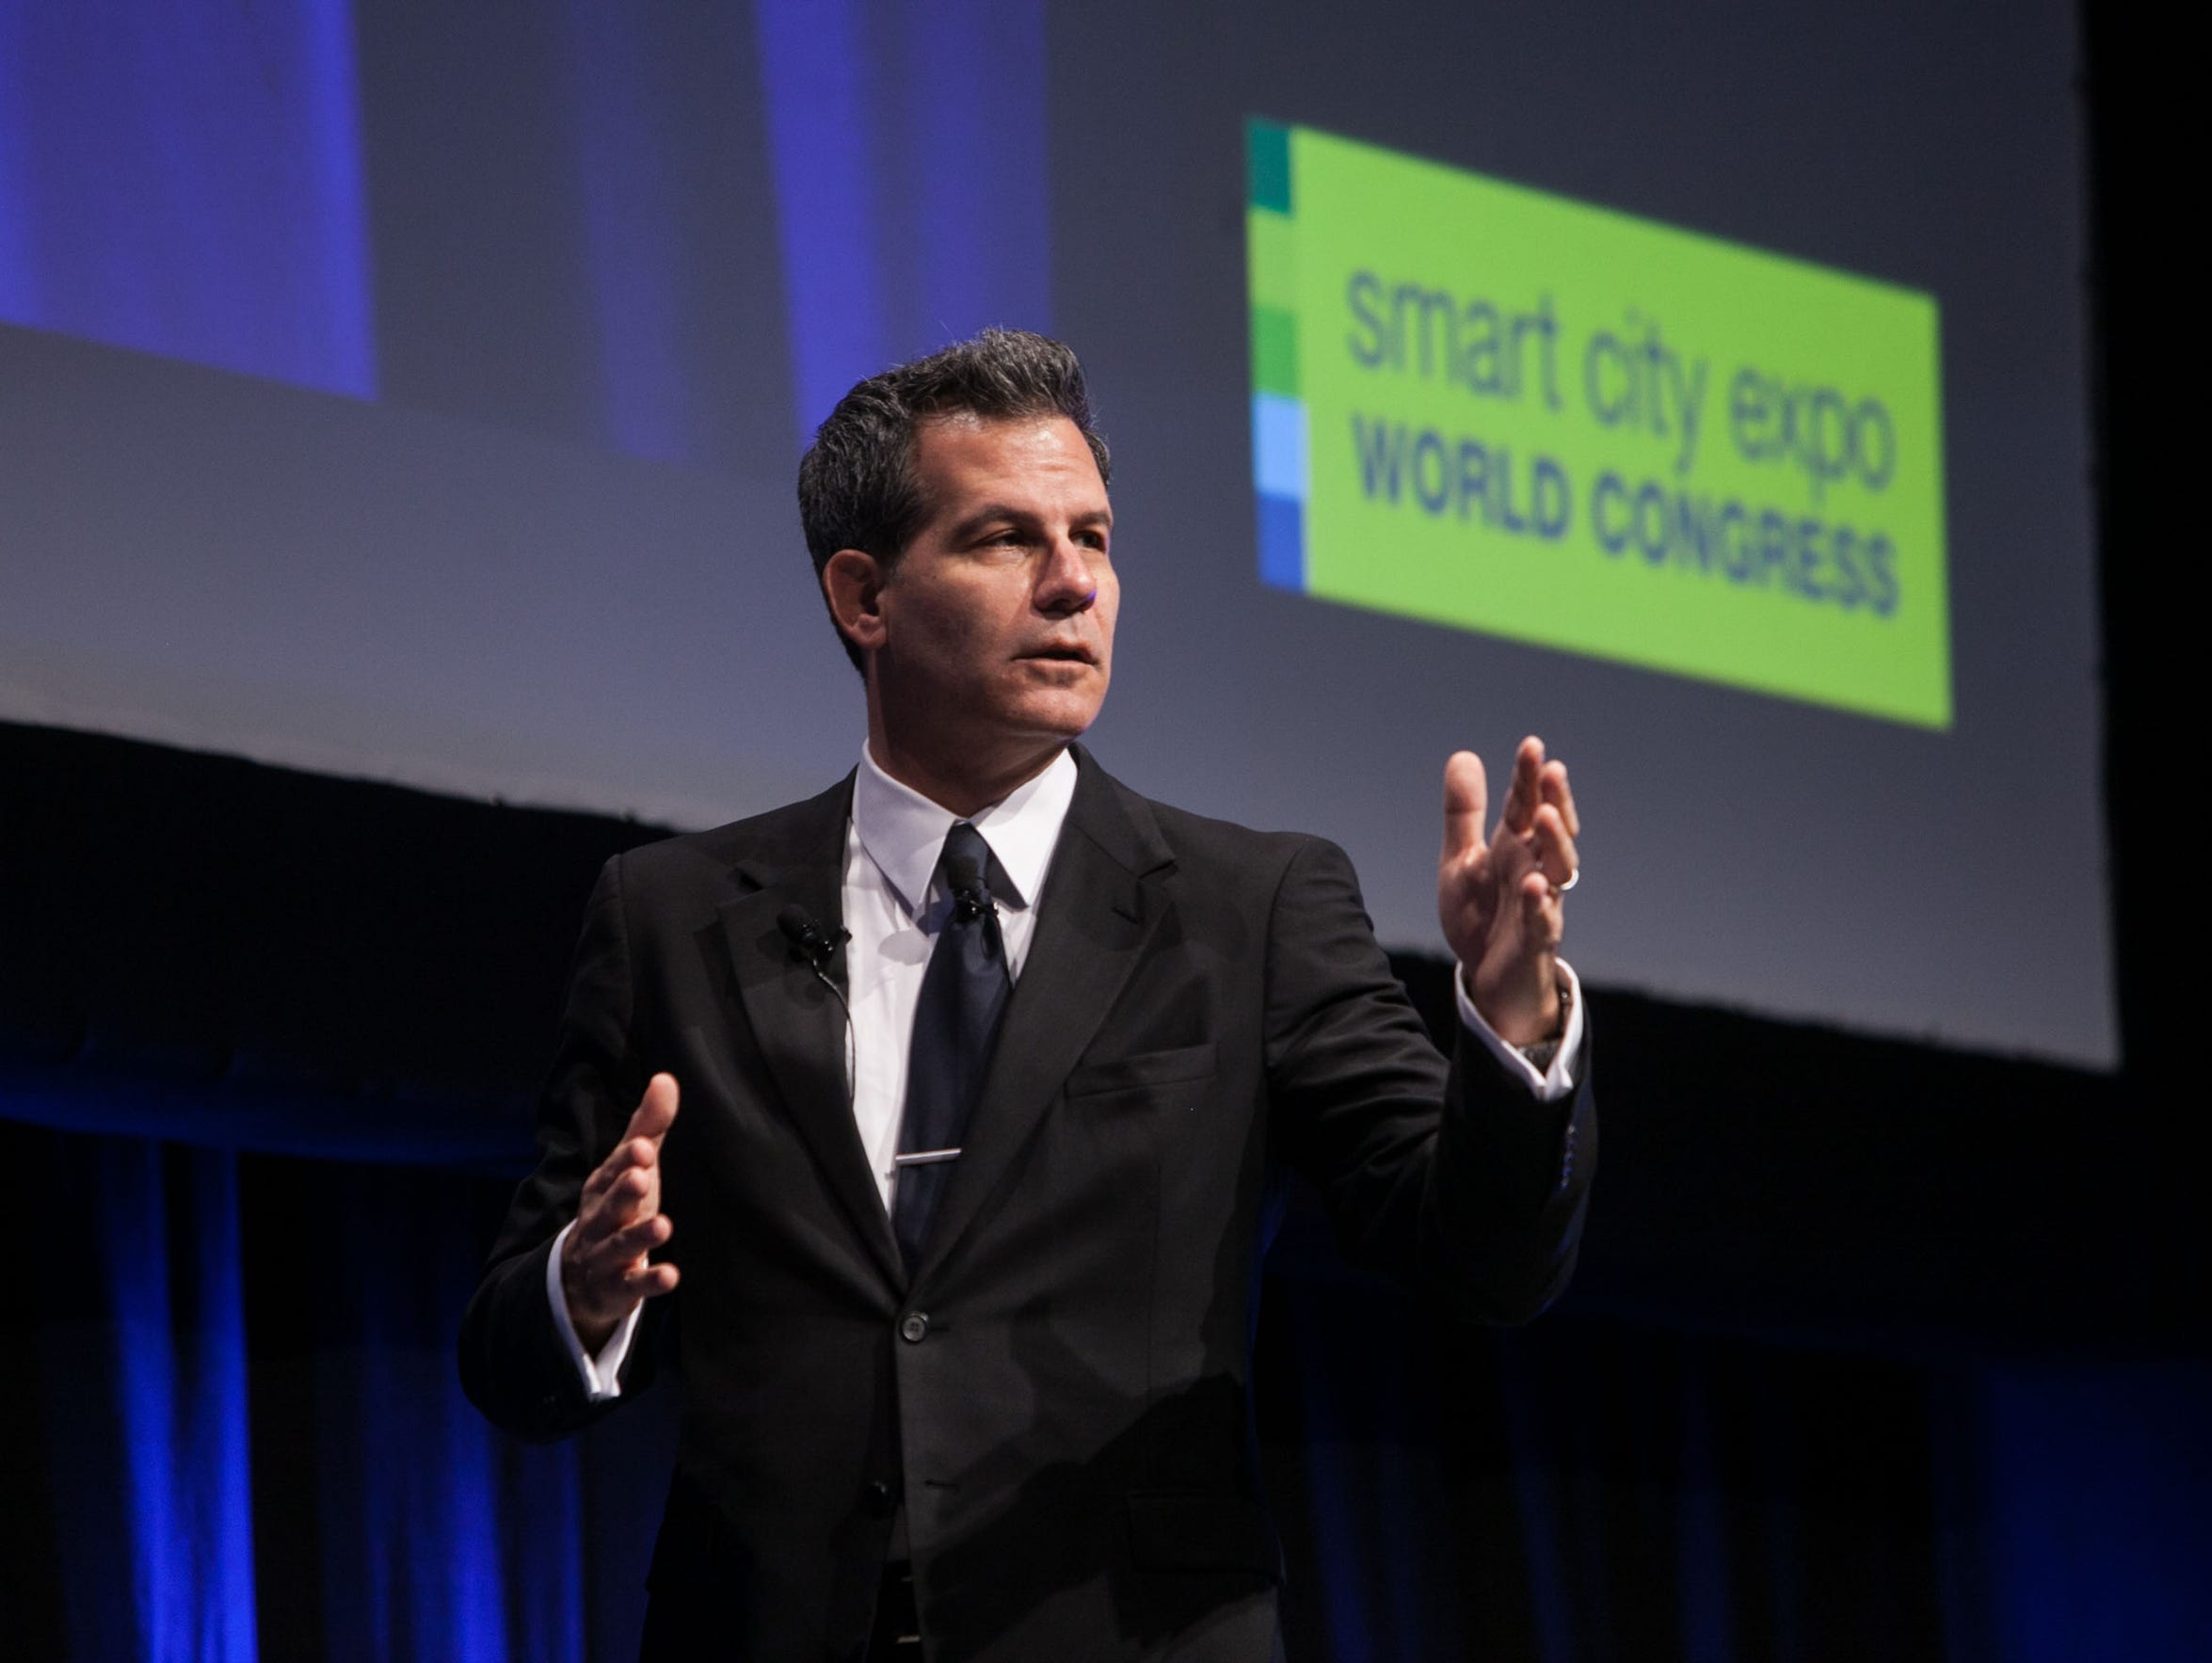 Author and academic Richard Florida at a recent Smart